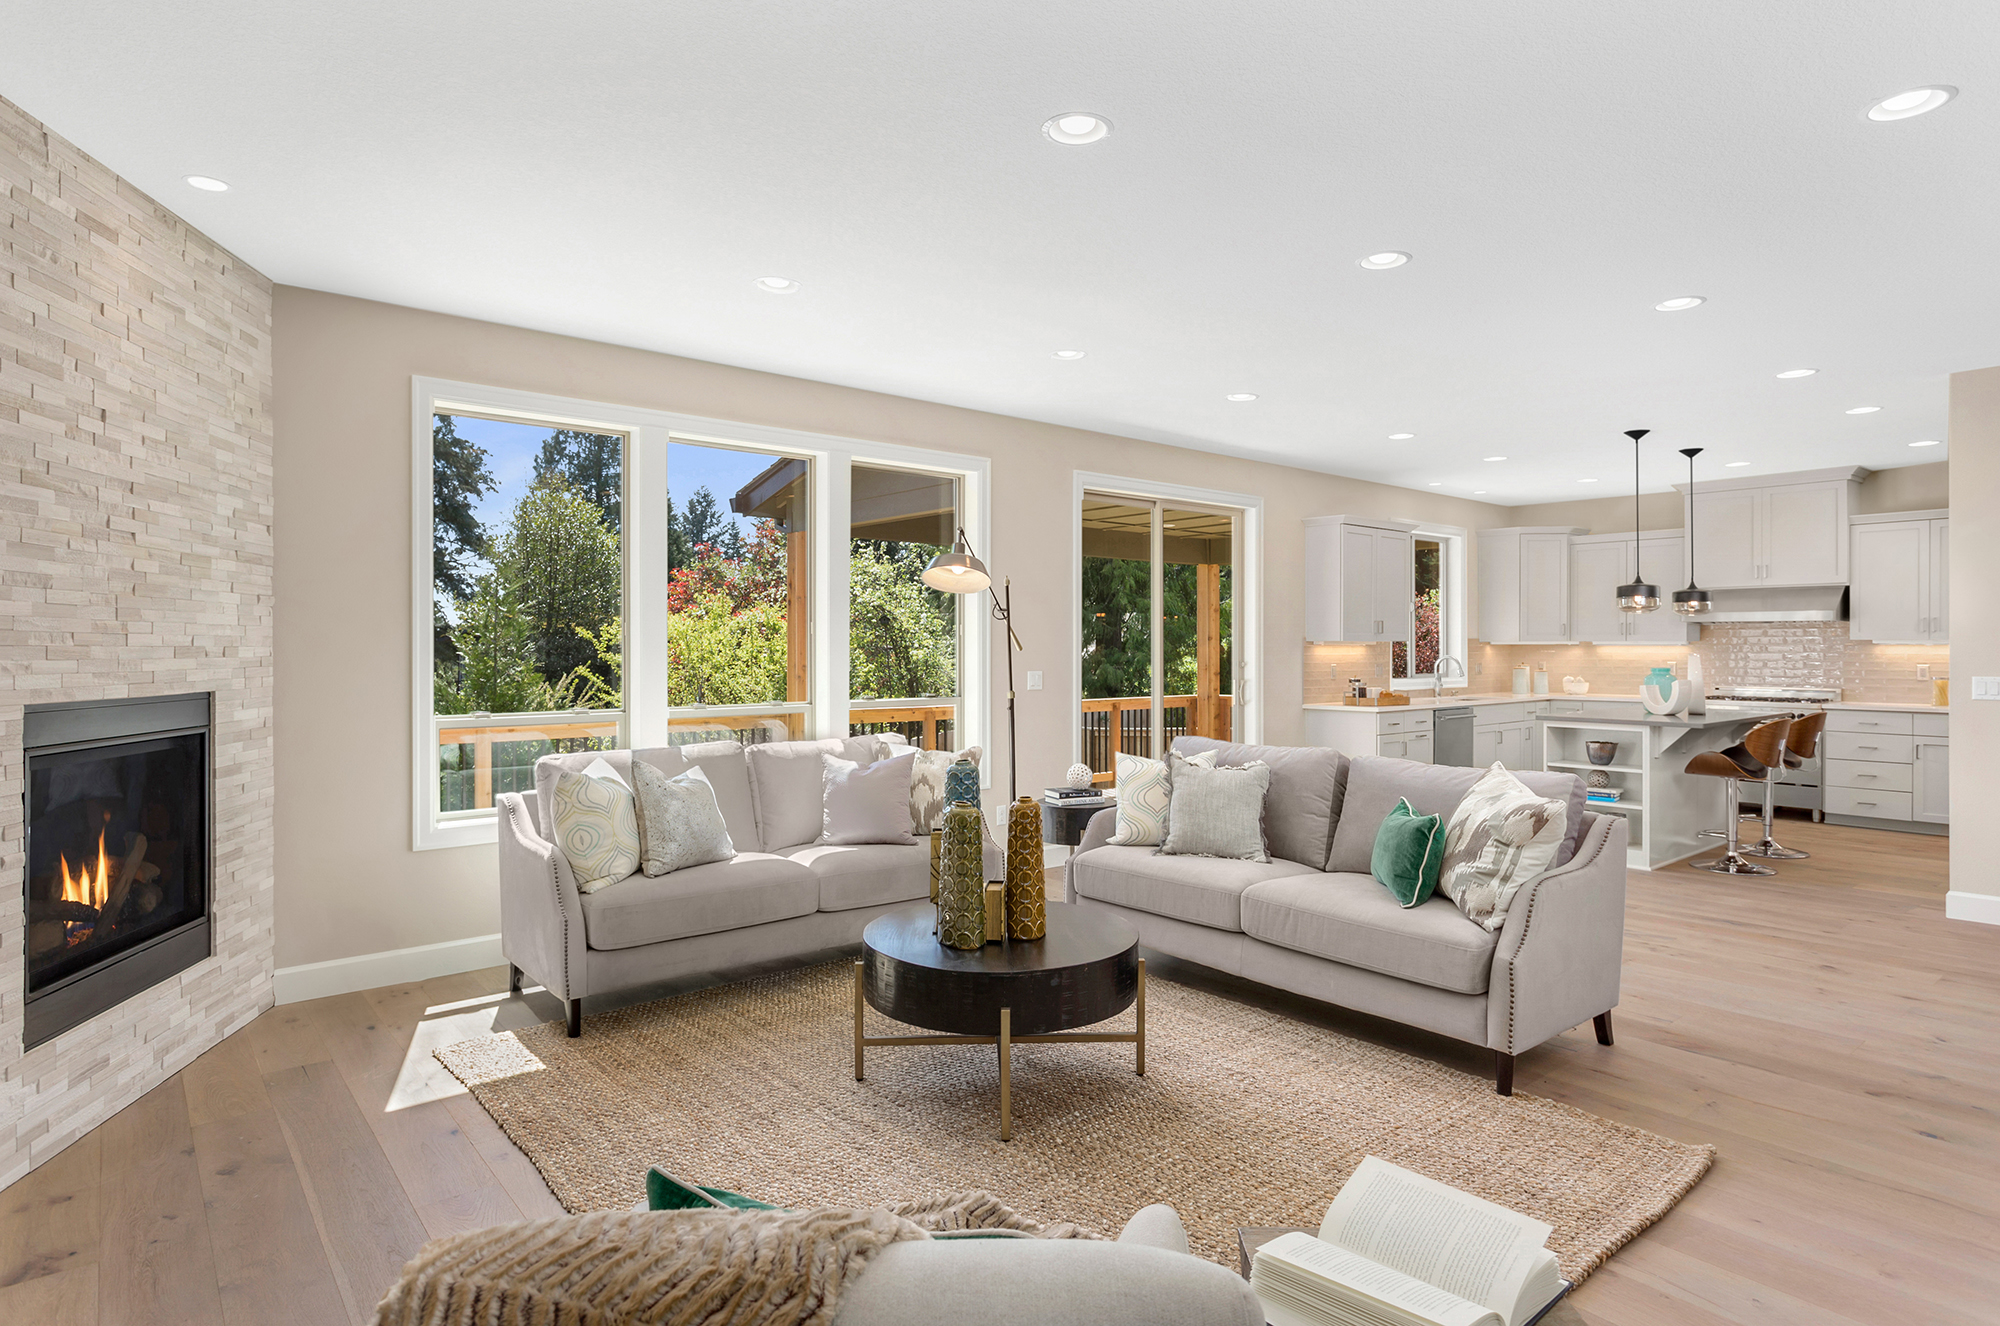 Beautiful living room in new home with open concept floor plan.